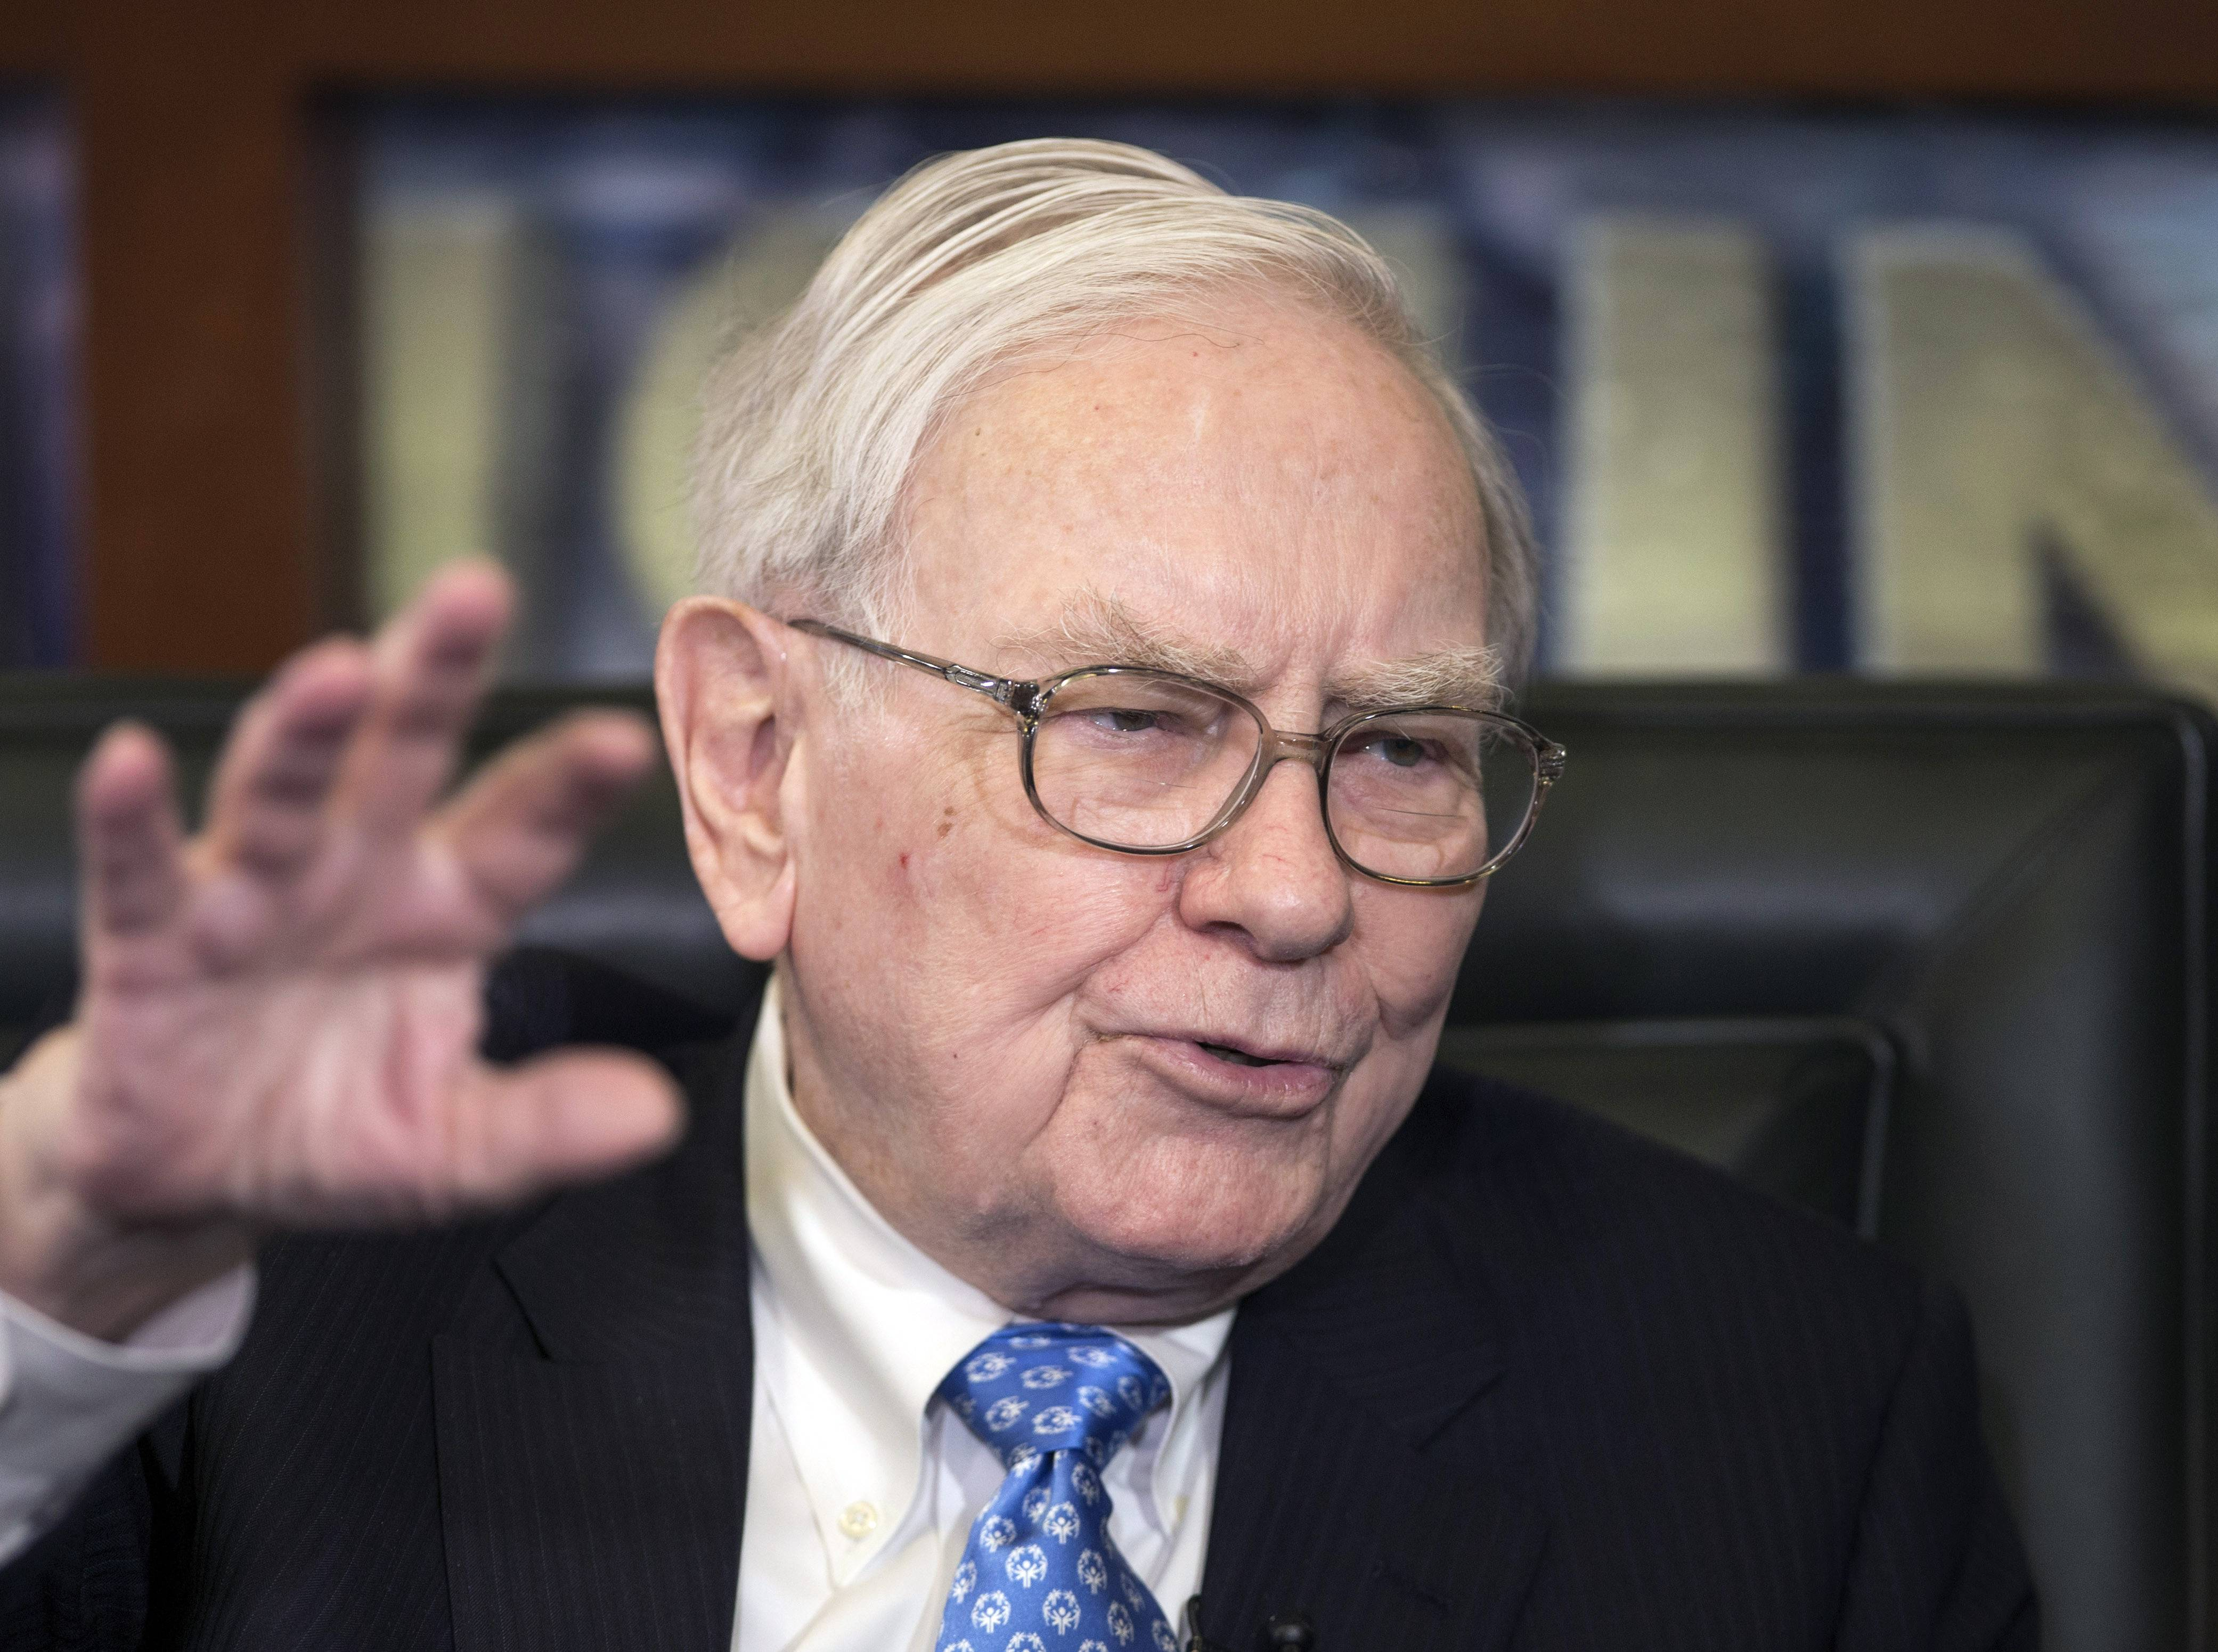 Berkshire Hathaway CEO and Chairman Warren Buffett disapproves of Coca-Cola's highly contested pay plan for its executives.